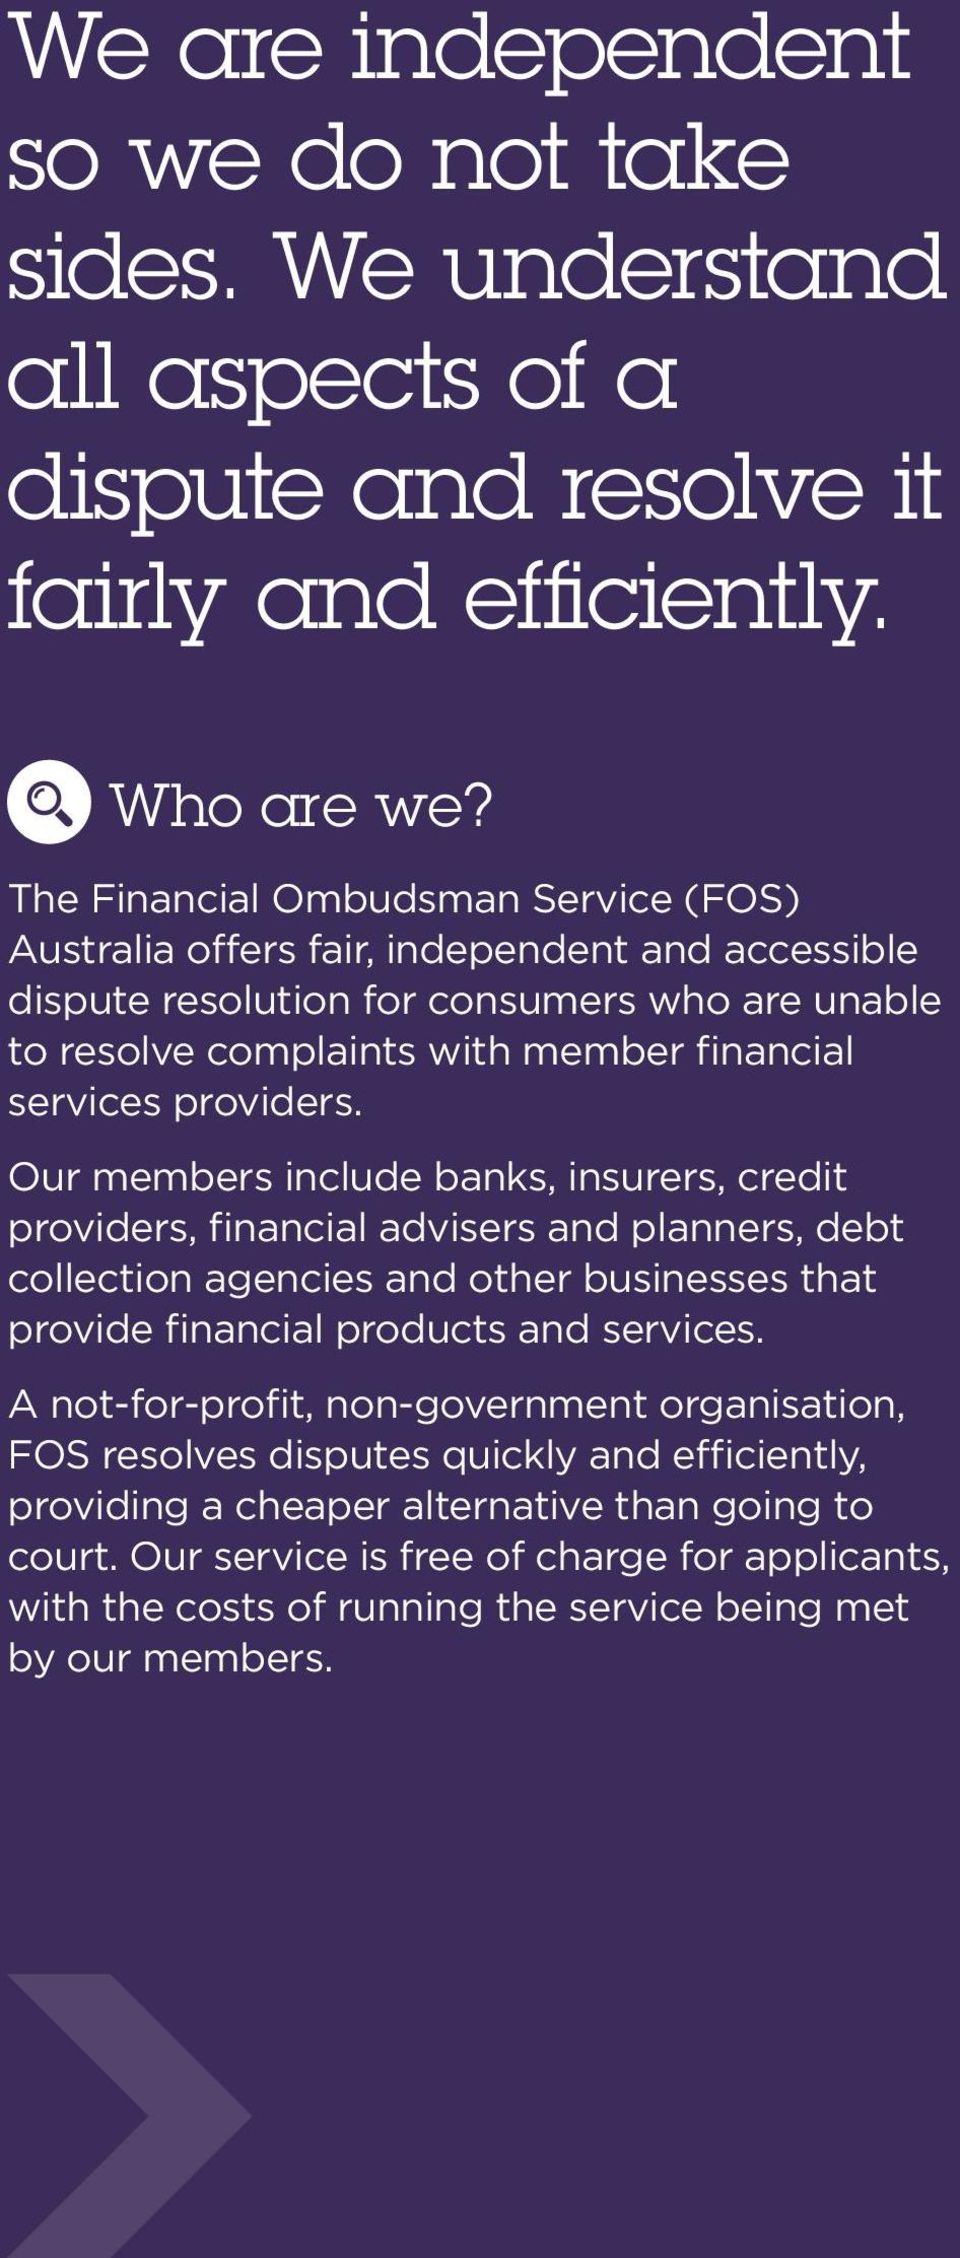 providers. Our members include banks, insurers, credit providers, financial advisers and planners, debt collection agencies and other businesses that provide financial products and services.